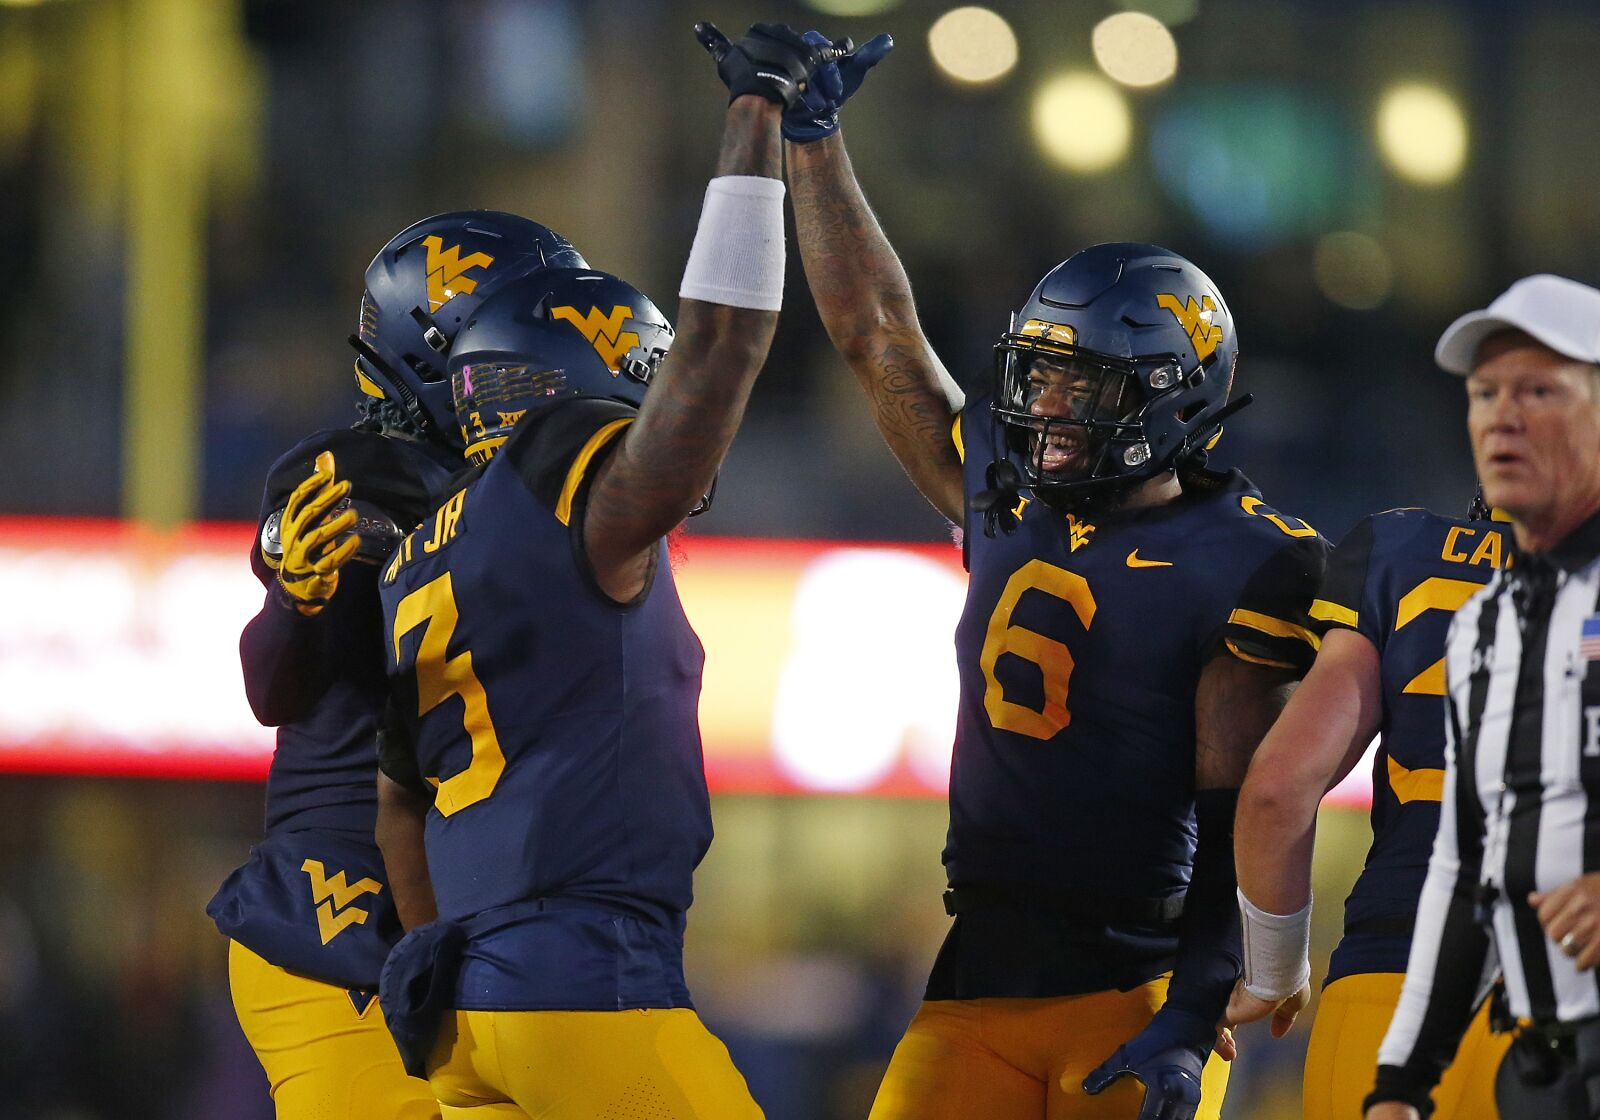 Texas Football: 3 players to watch on West Virginia